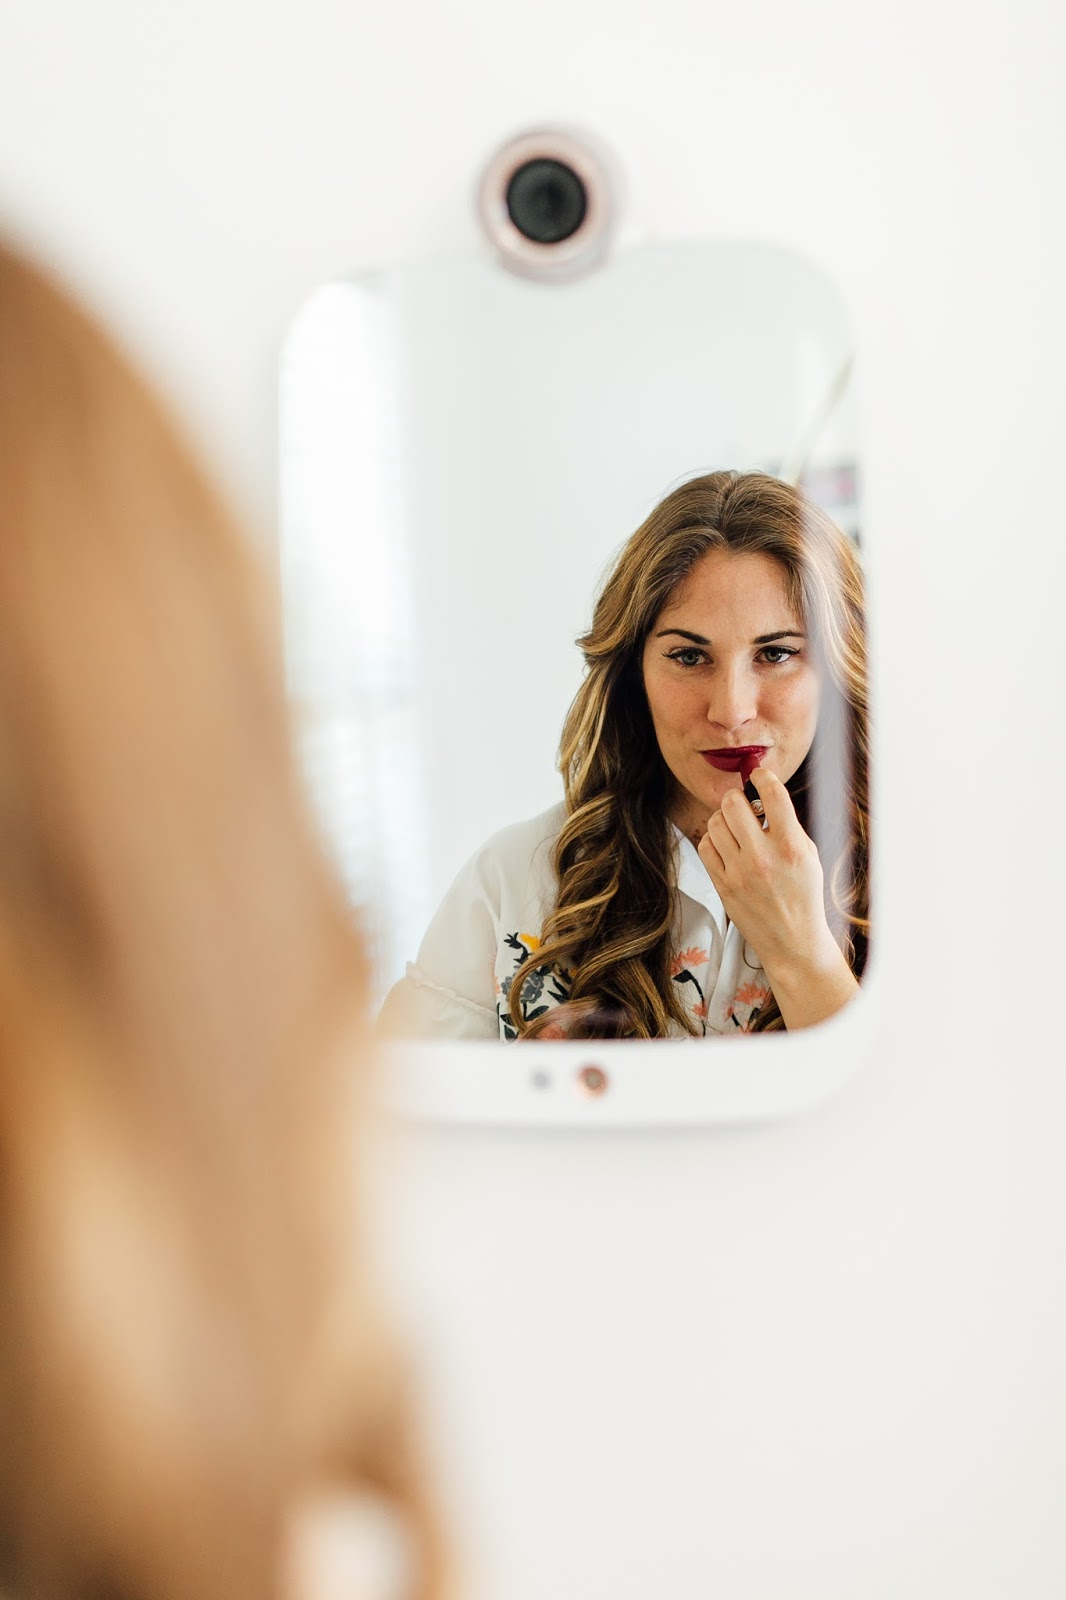 The Smart Beauty Mirror that Will Help You with Your Skincare Concerns by popular blogger Laura of Walking in Memphis in High Heels